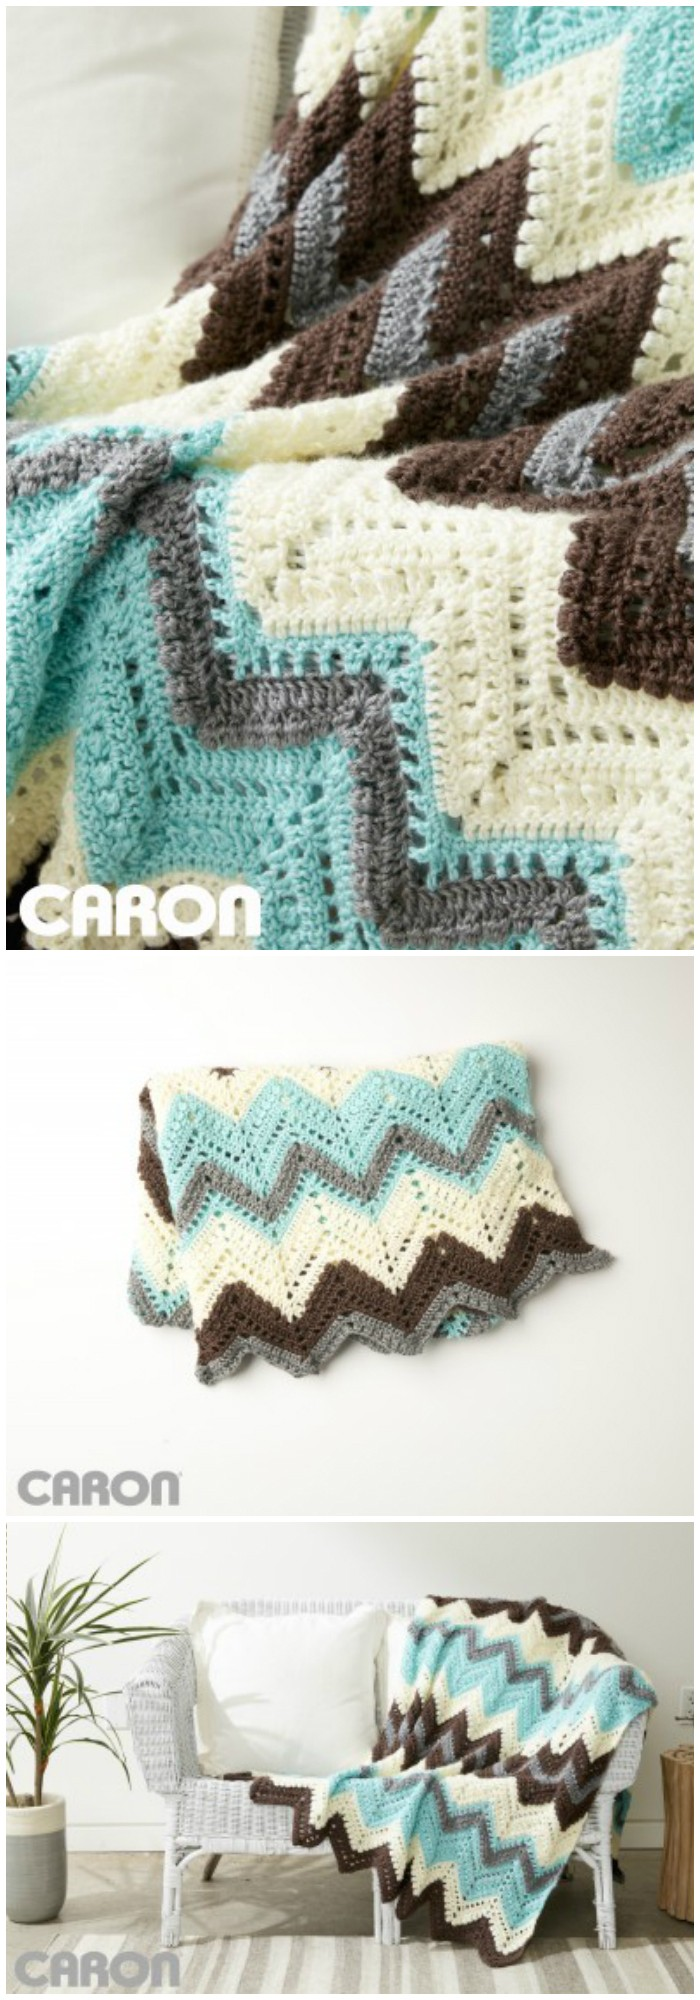 Cabin In The Woods Afghan Free Crochet Pattern - crochet blanket